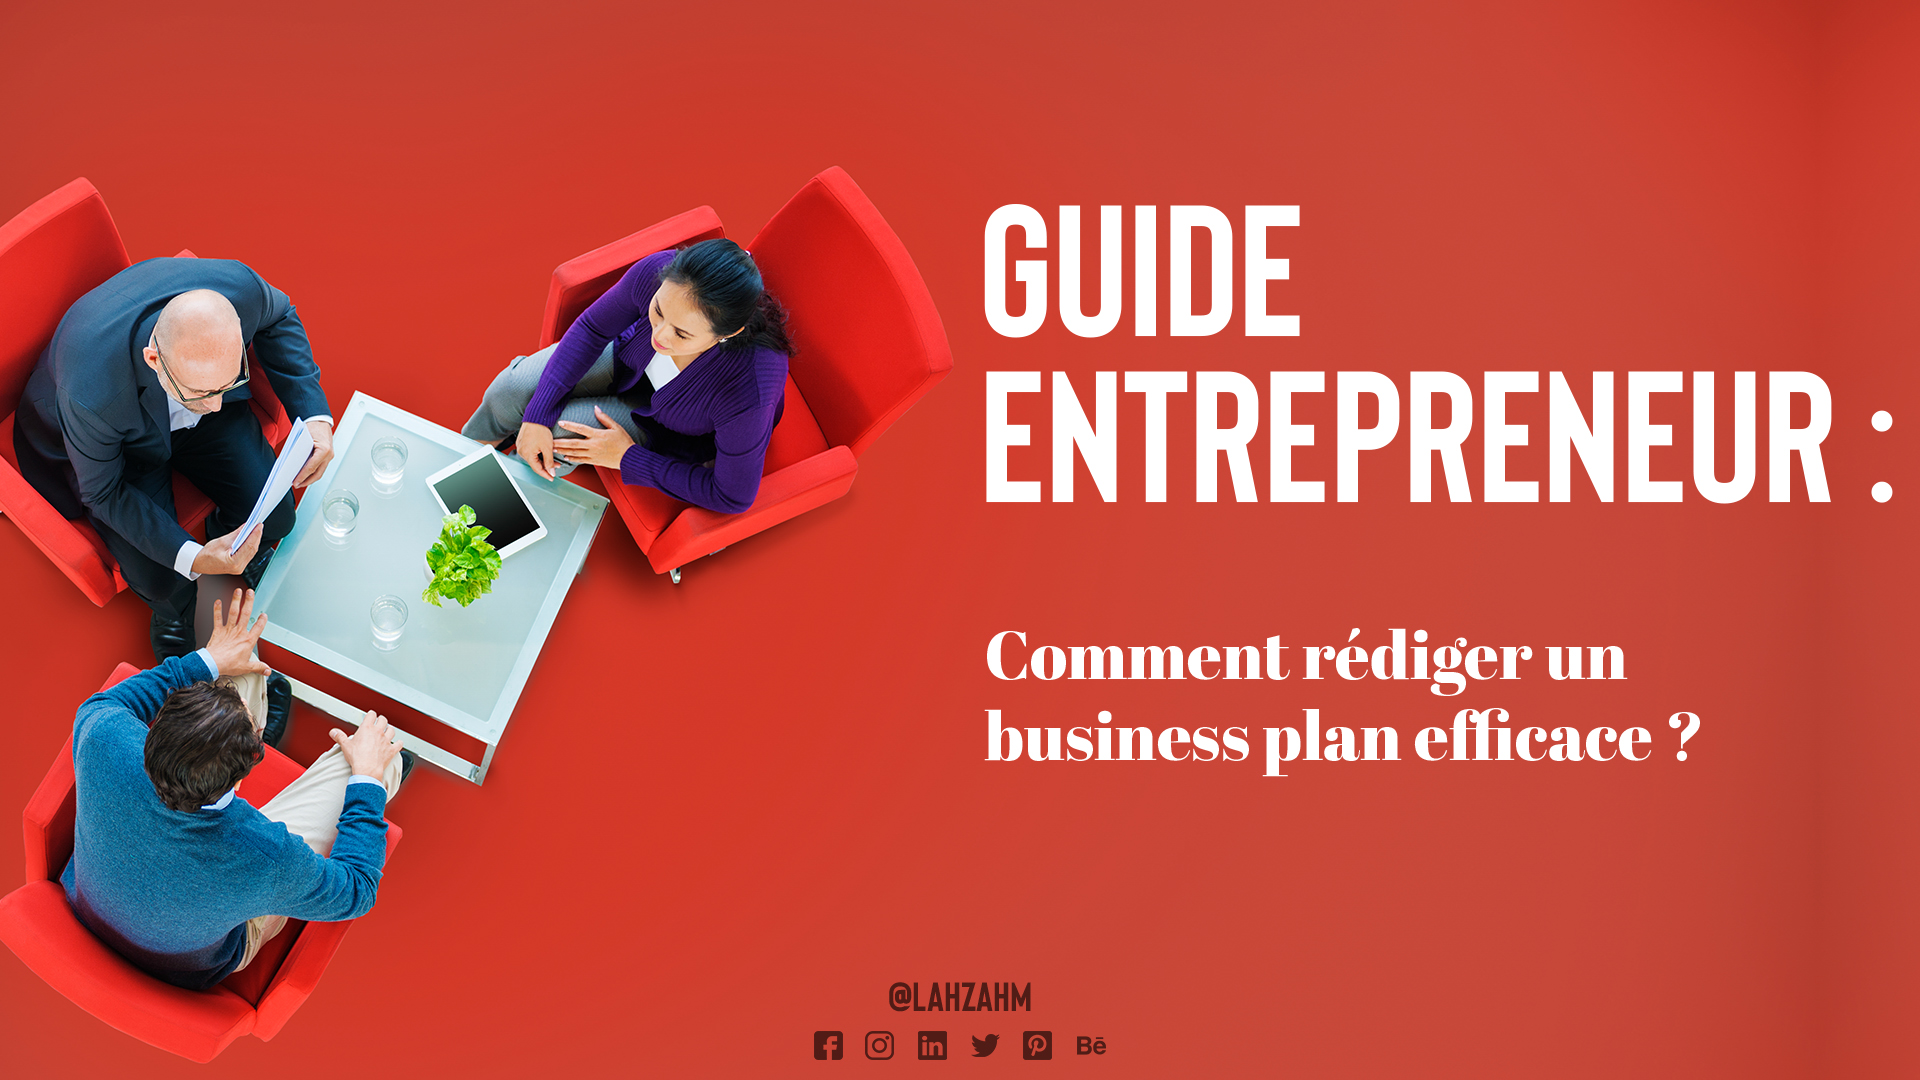 Guide Entrepreneur : Comment rédiger un business plan efficace ?